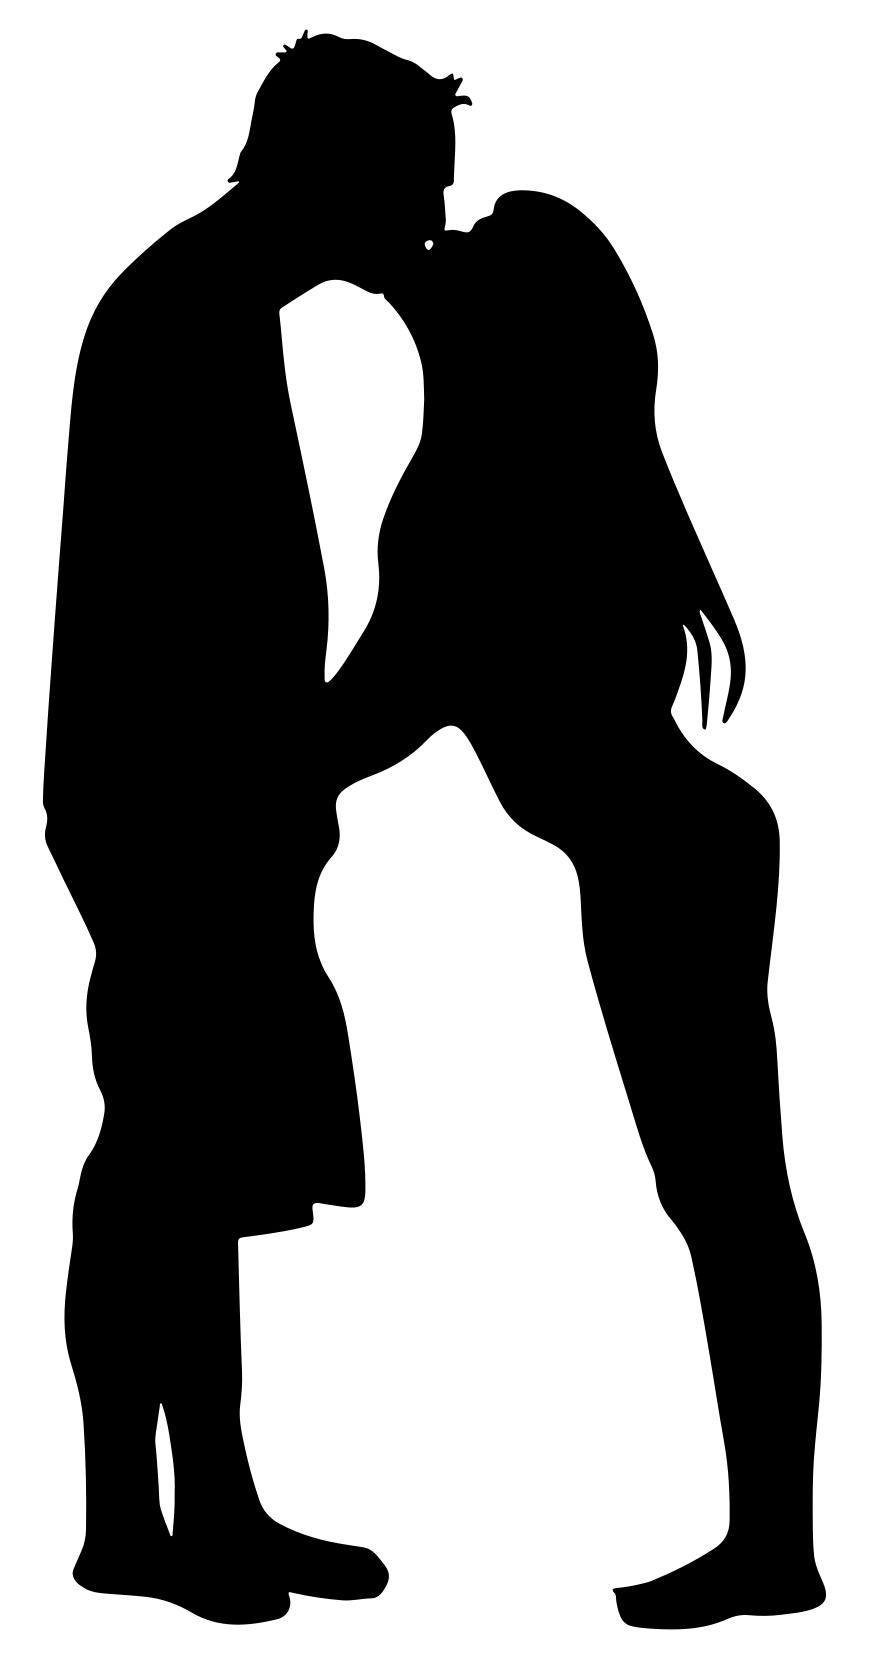 869x1659 Couple Kissing Silhouette Clipart